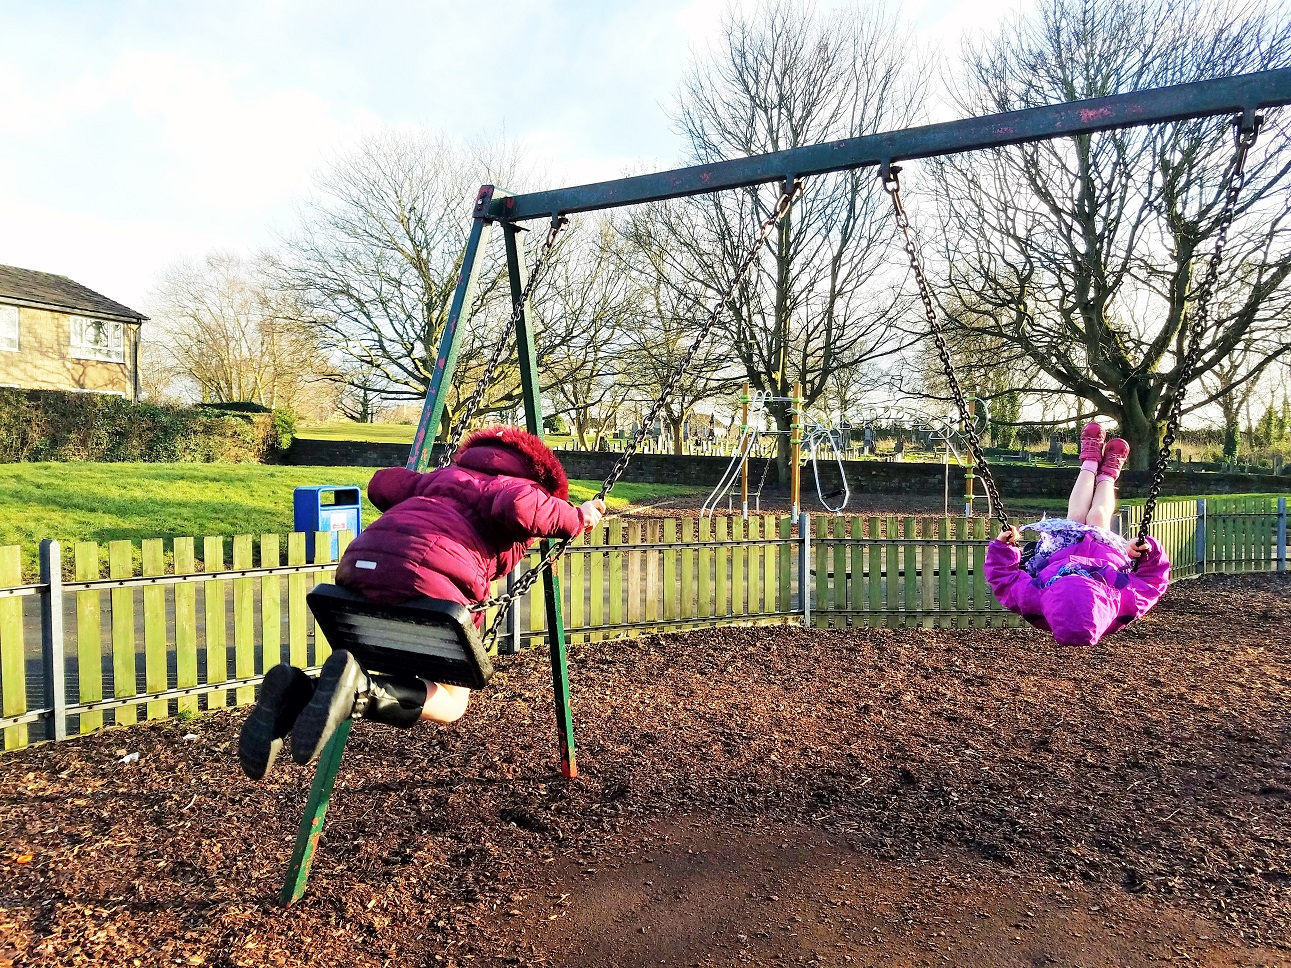 how does time out discipline work chidren on swings at park